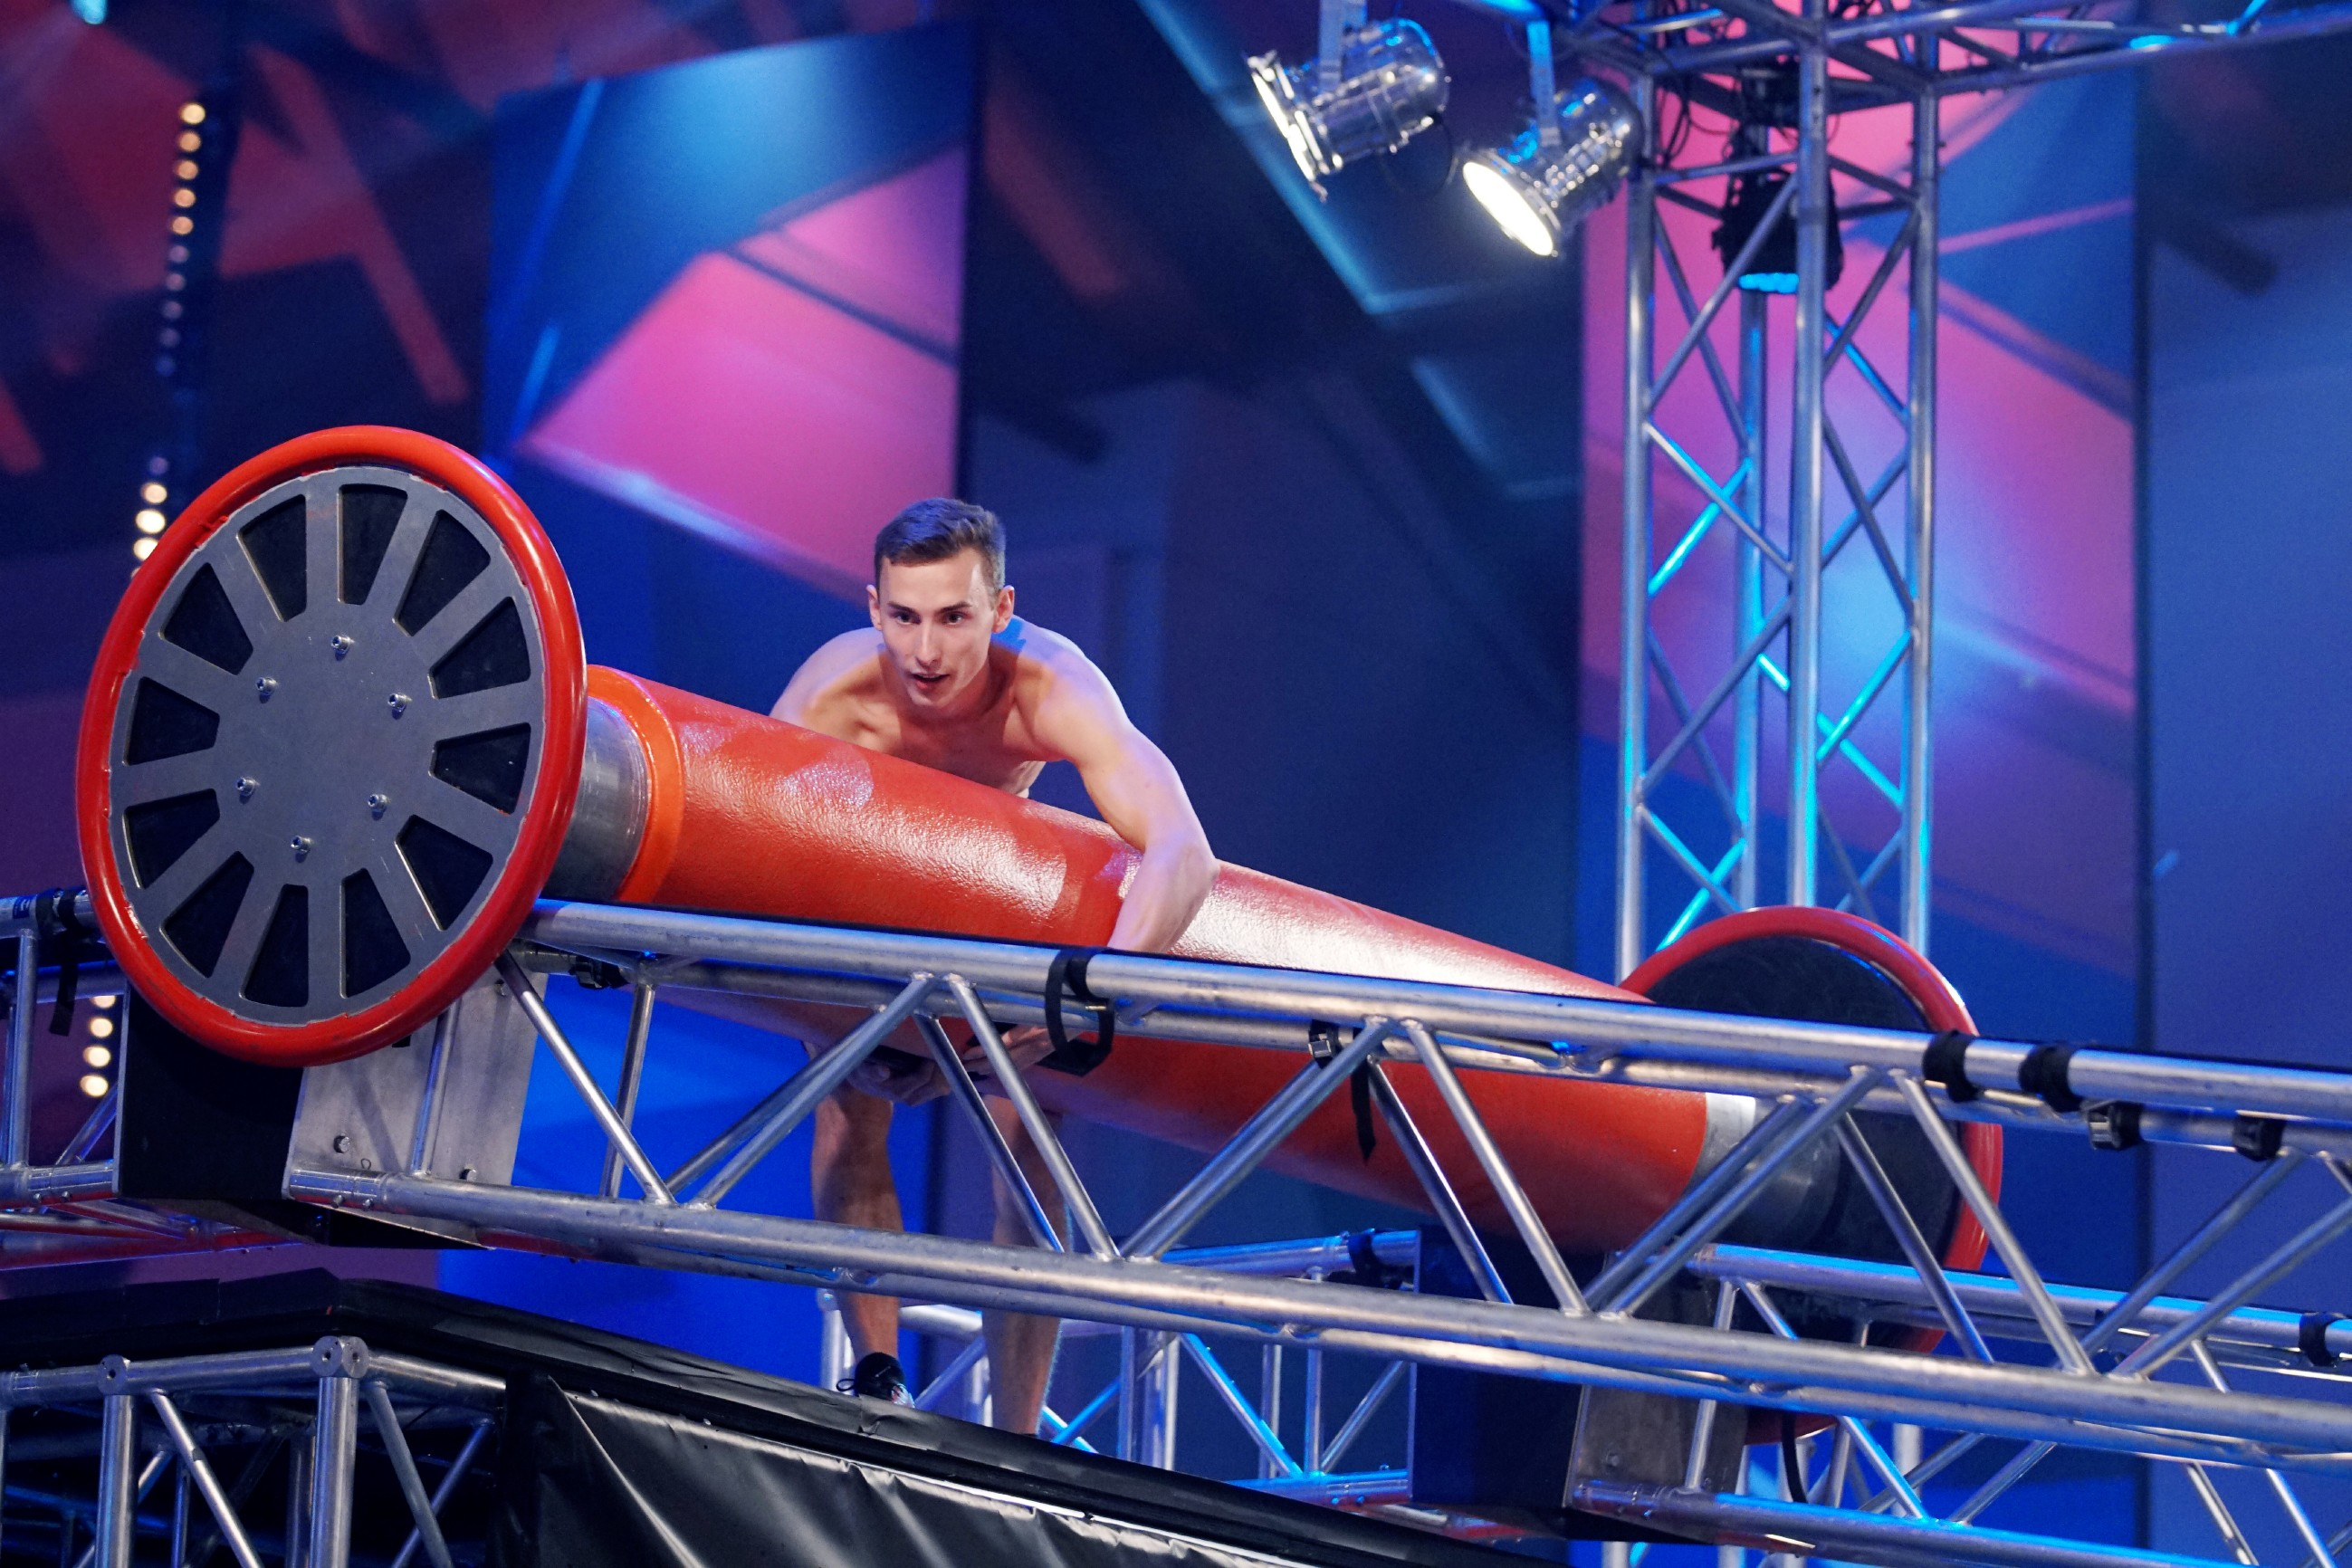 Ninja Warrior Germany 2017 - Niklas Wiesenzarter